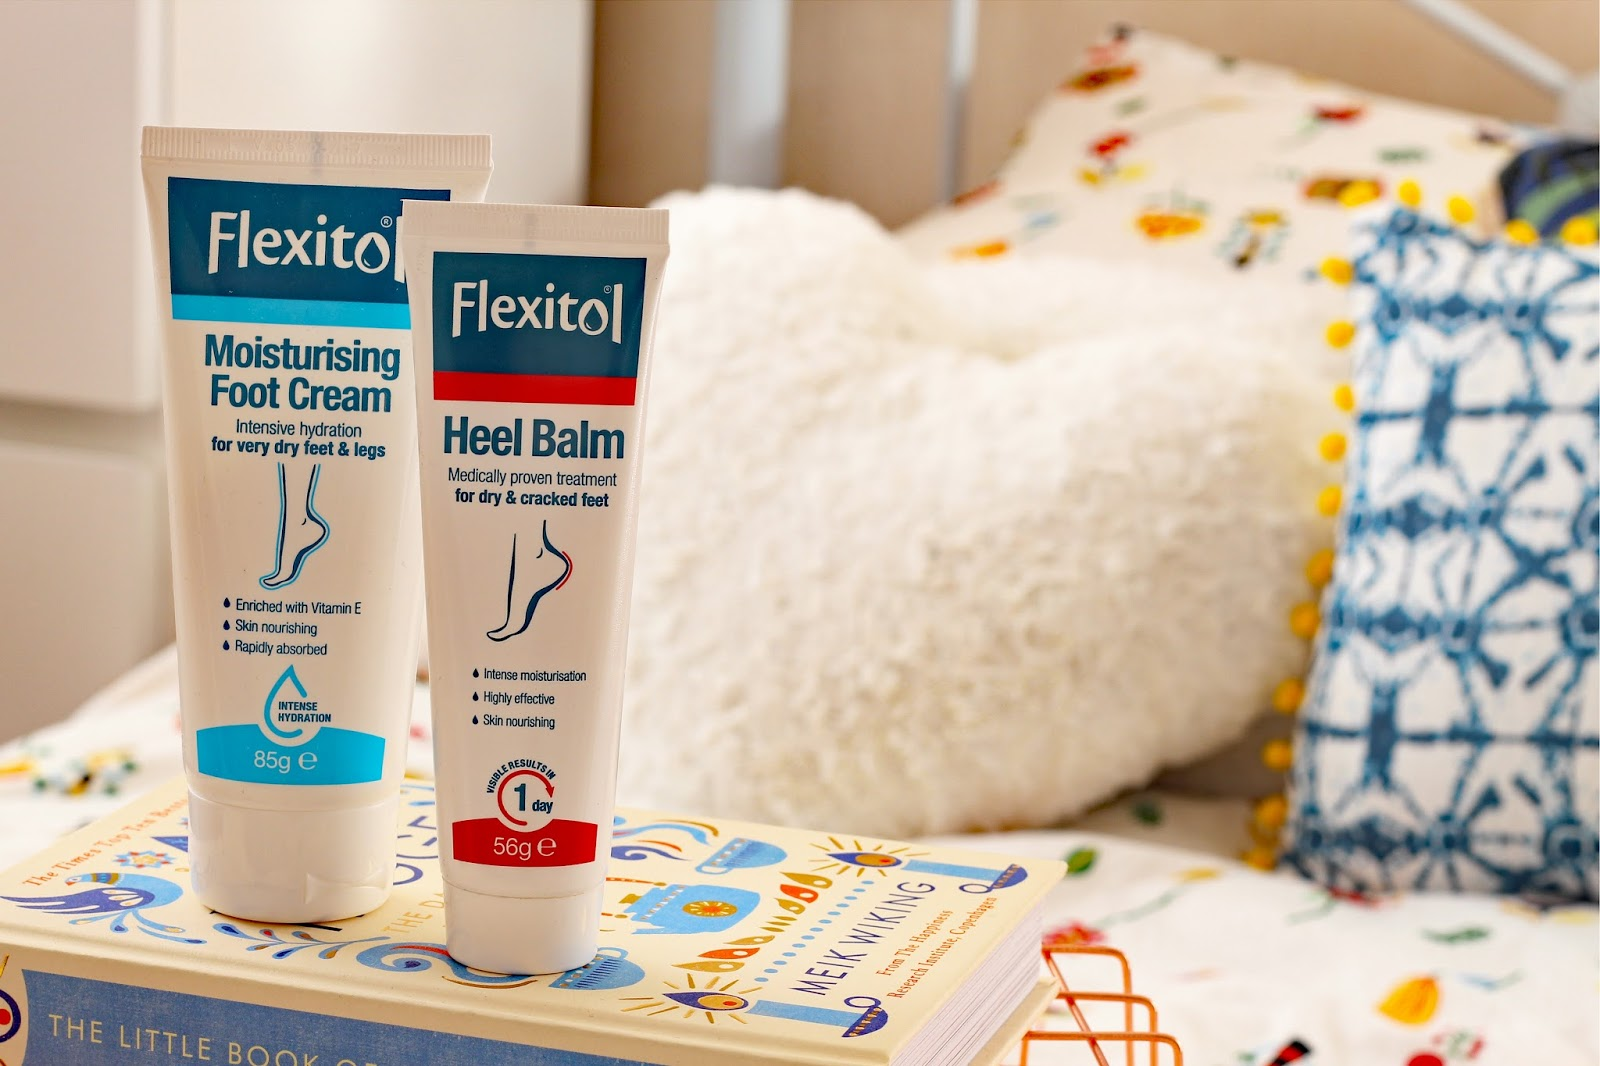 Let's Talk About Winter Foot Care beauty skincare footcream flexitol